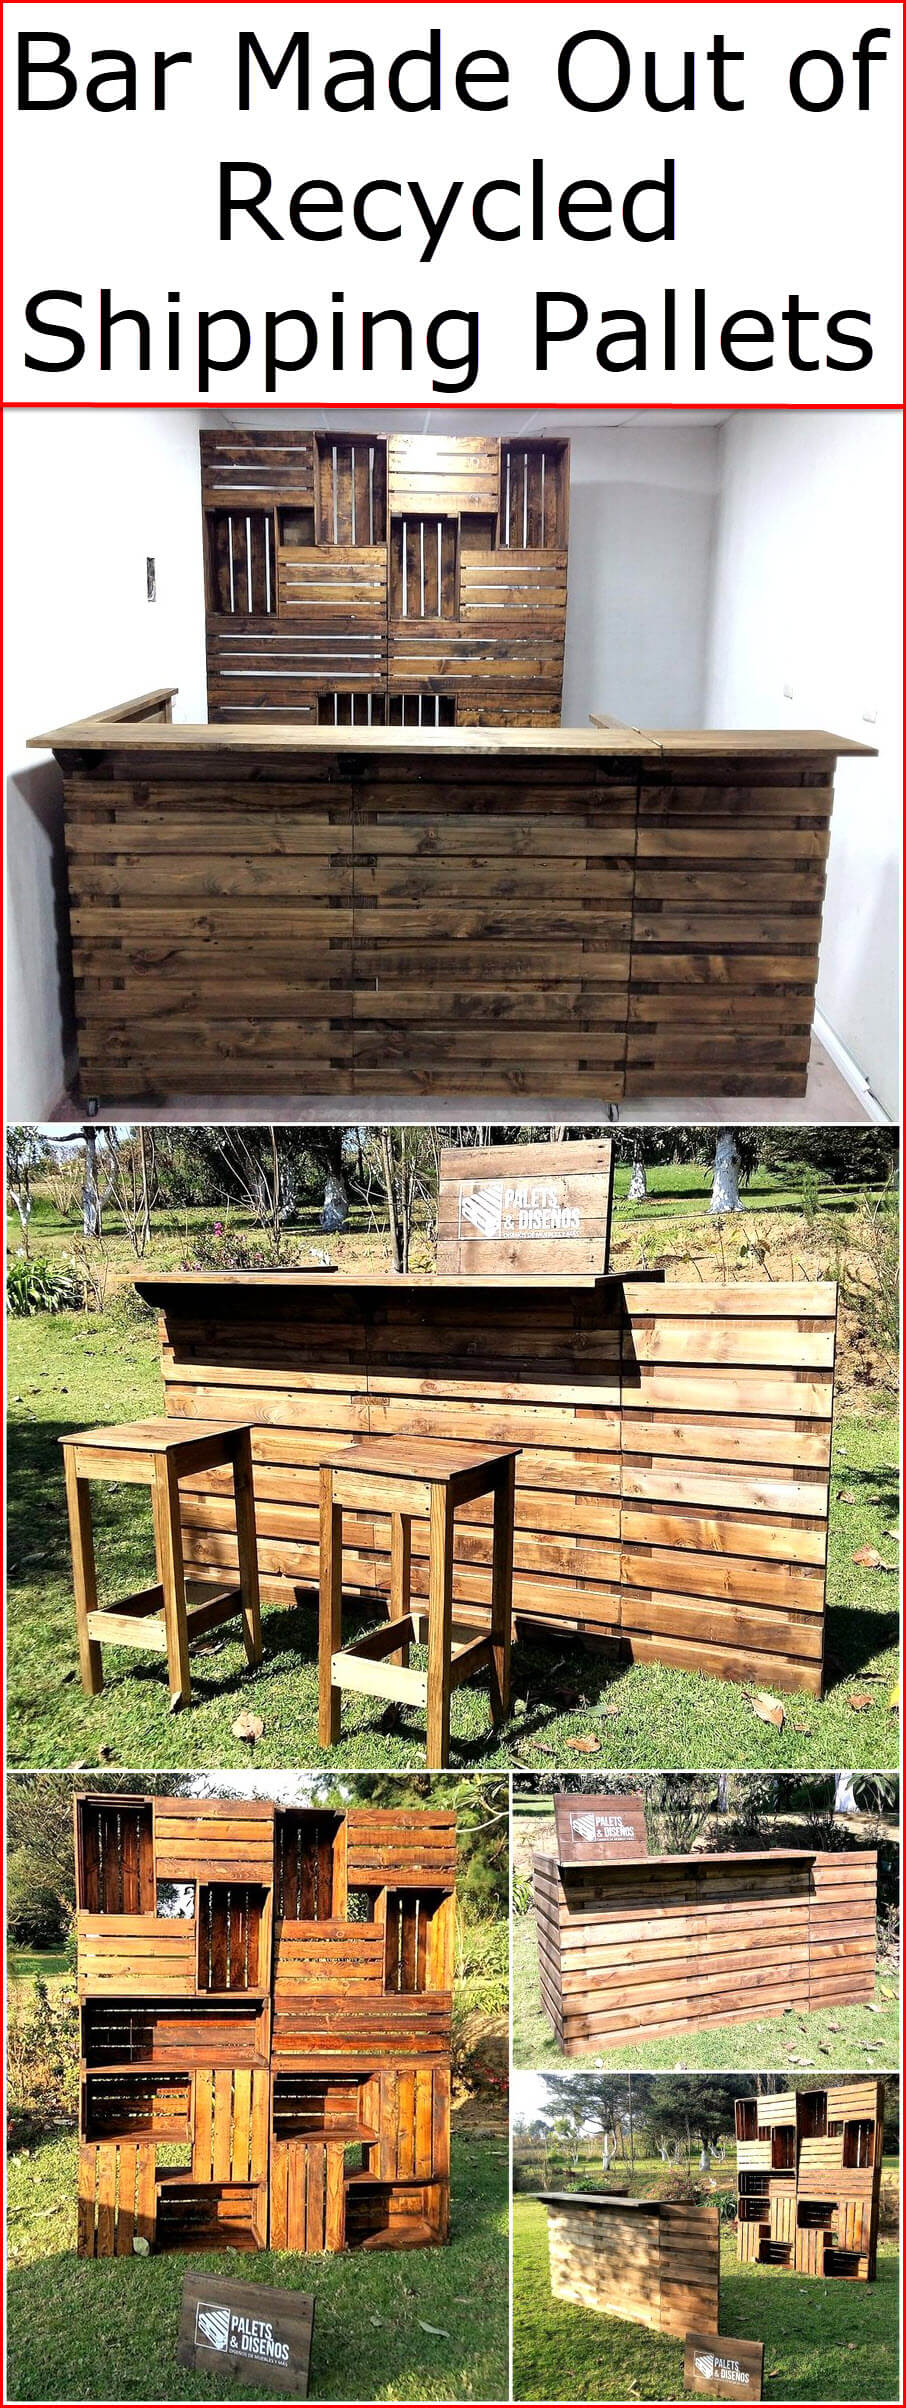 Bar Made Out of Recycled Shipping Pallets